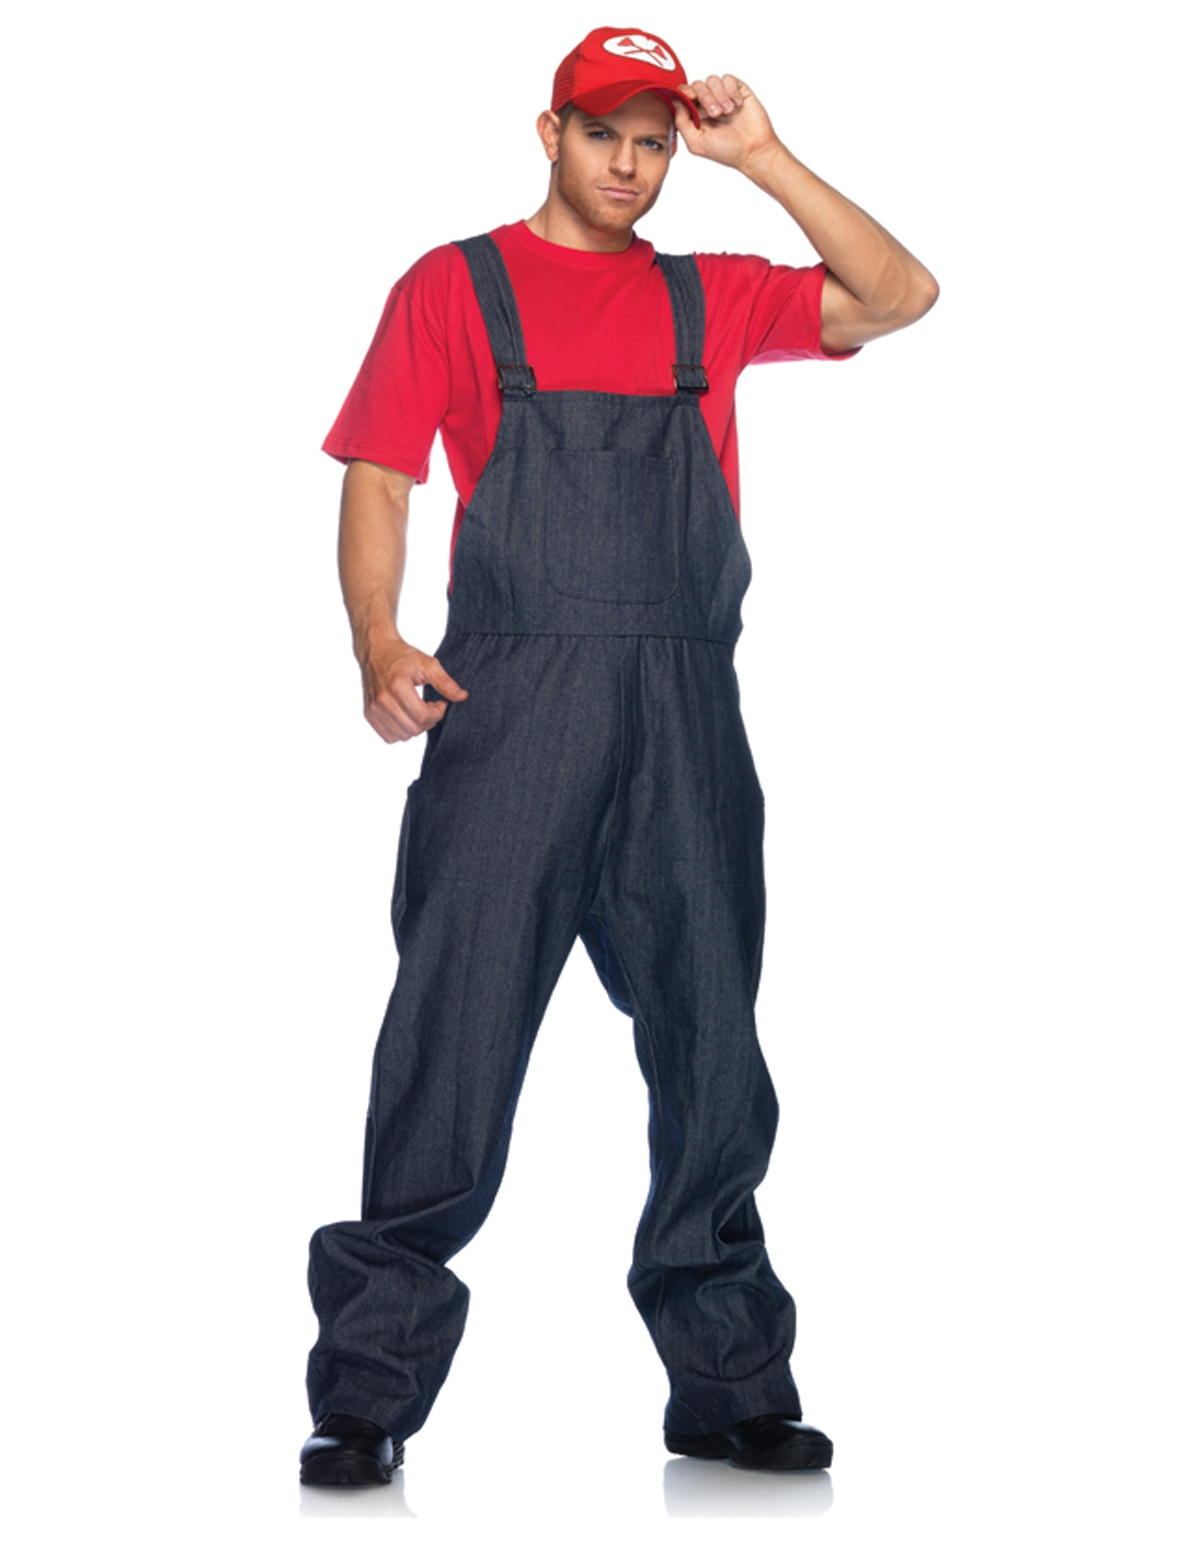 3Pc Super Plumber Costume